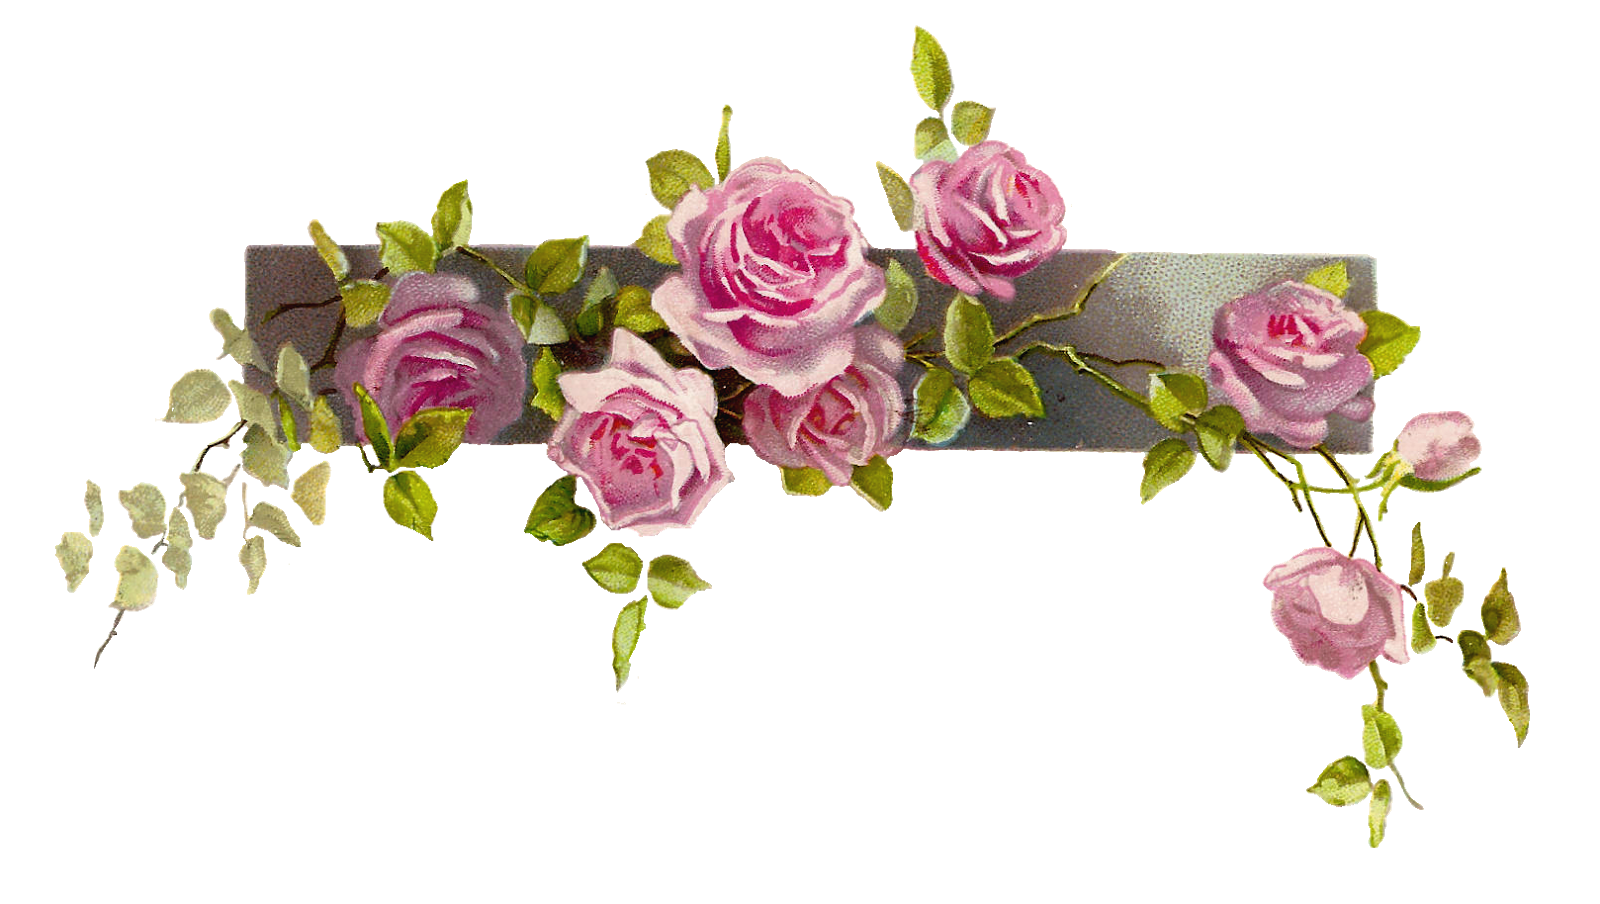 Divider clipart rose. This pink graphic is